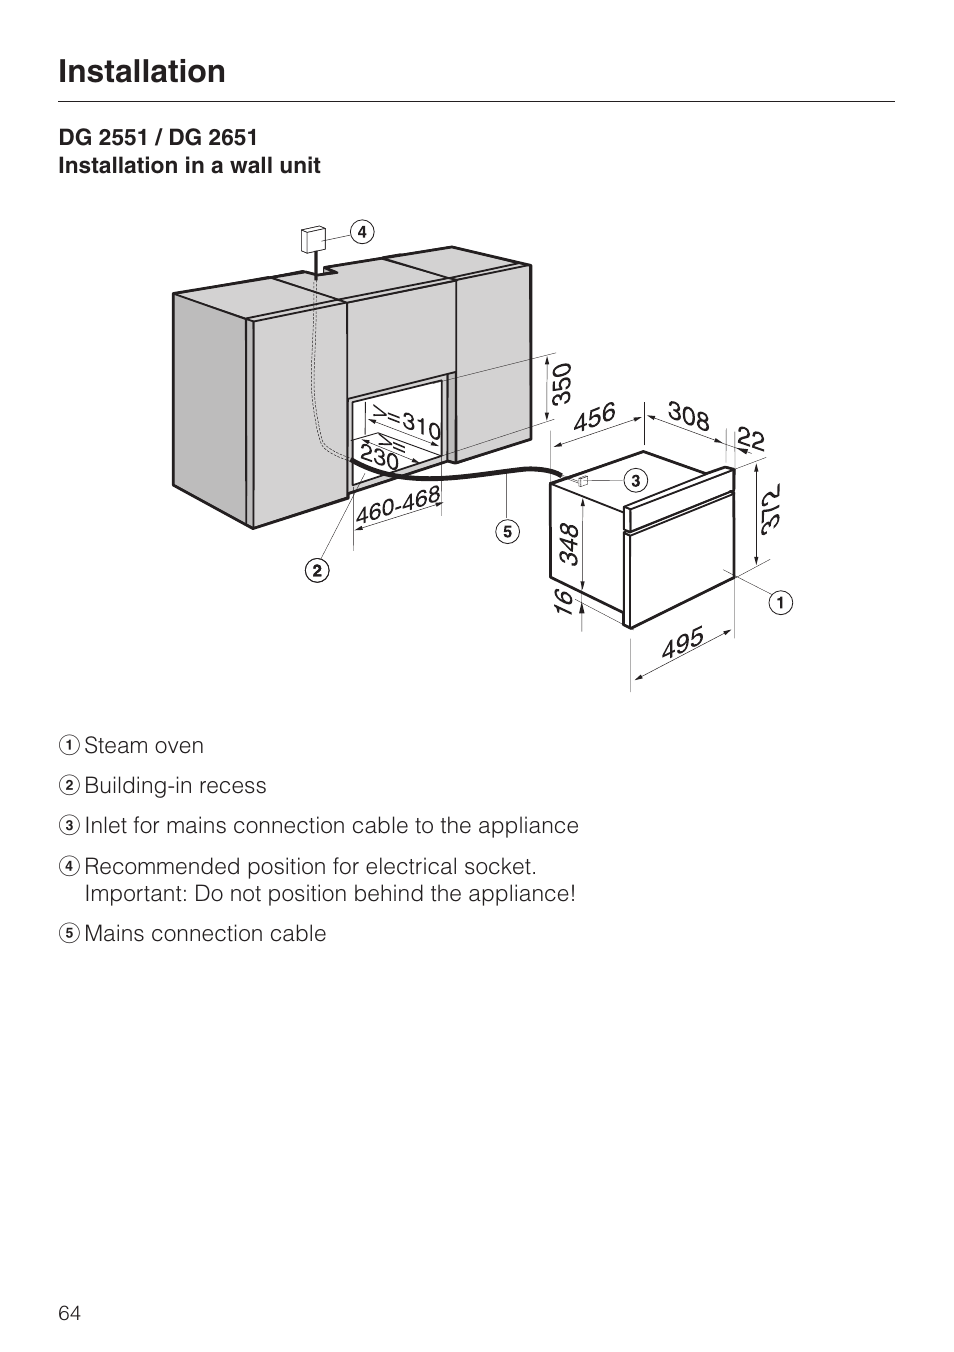 Installation Miele Dg 2351 User Manual Page 64 72